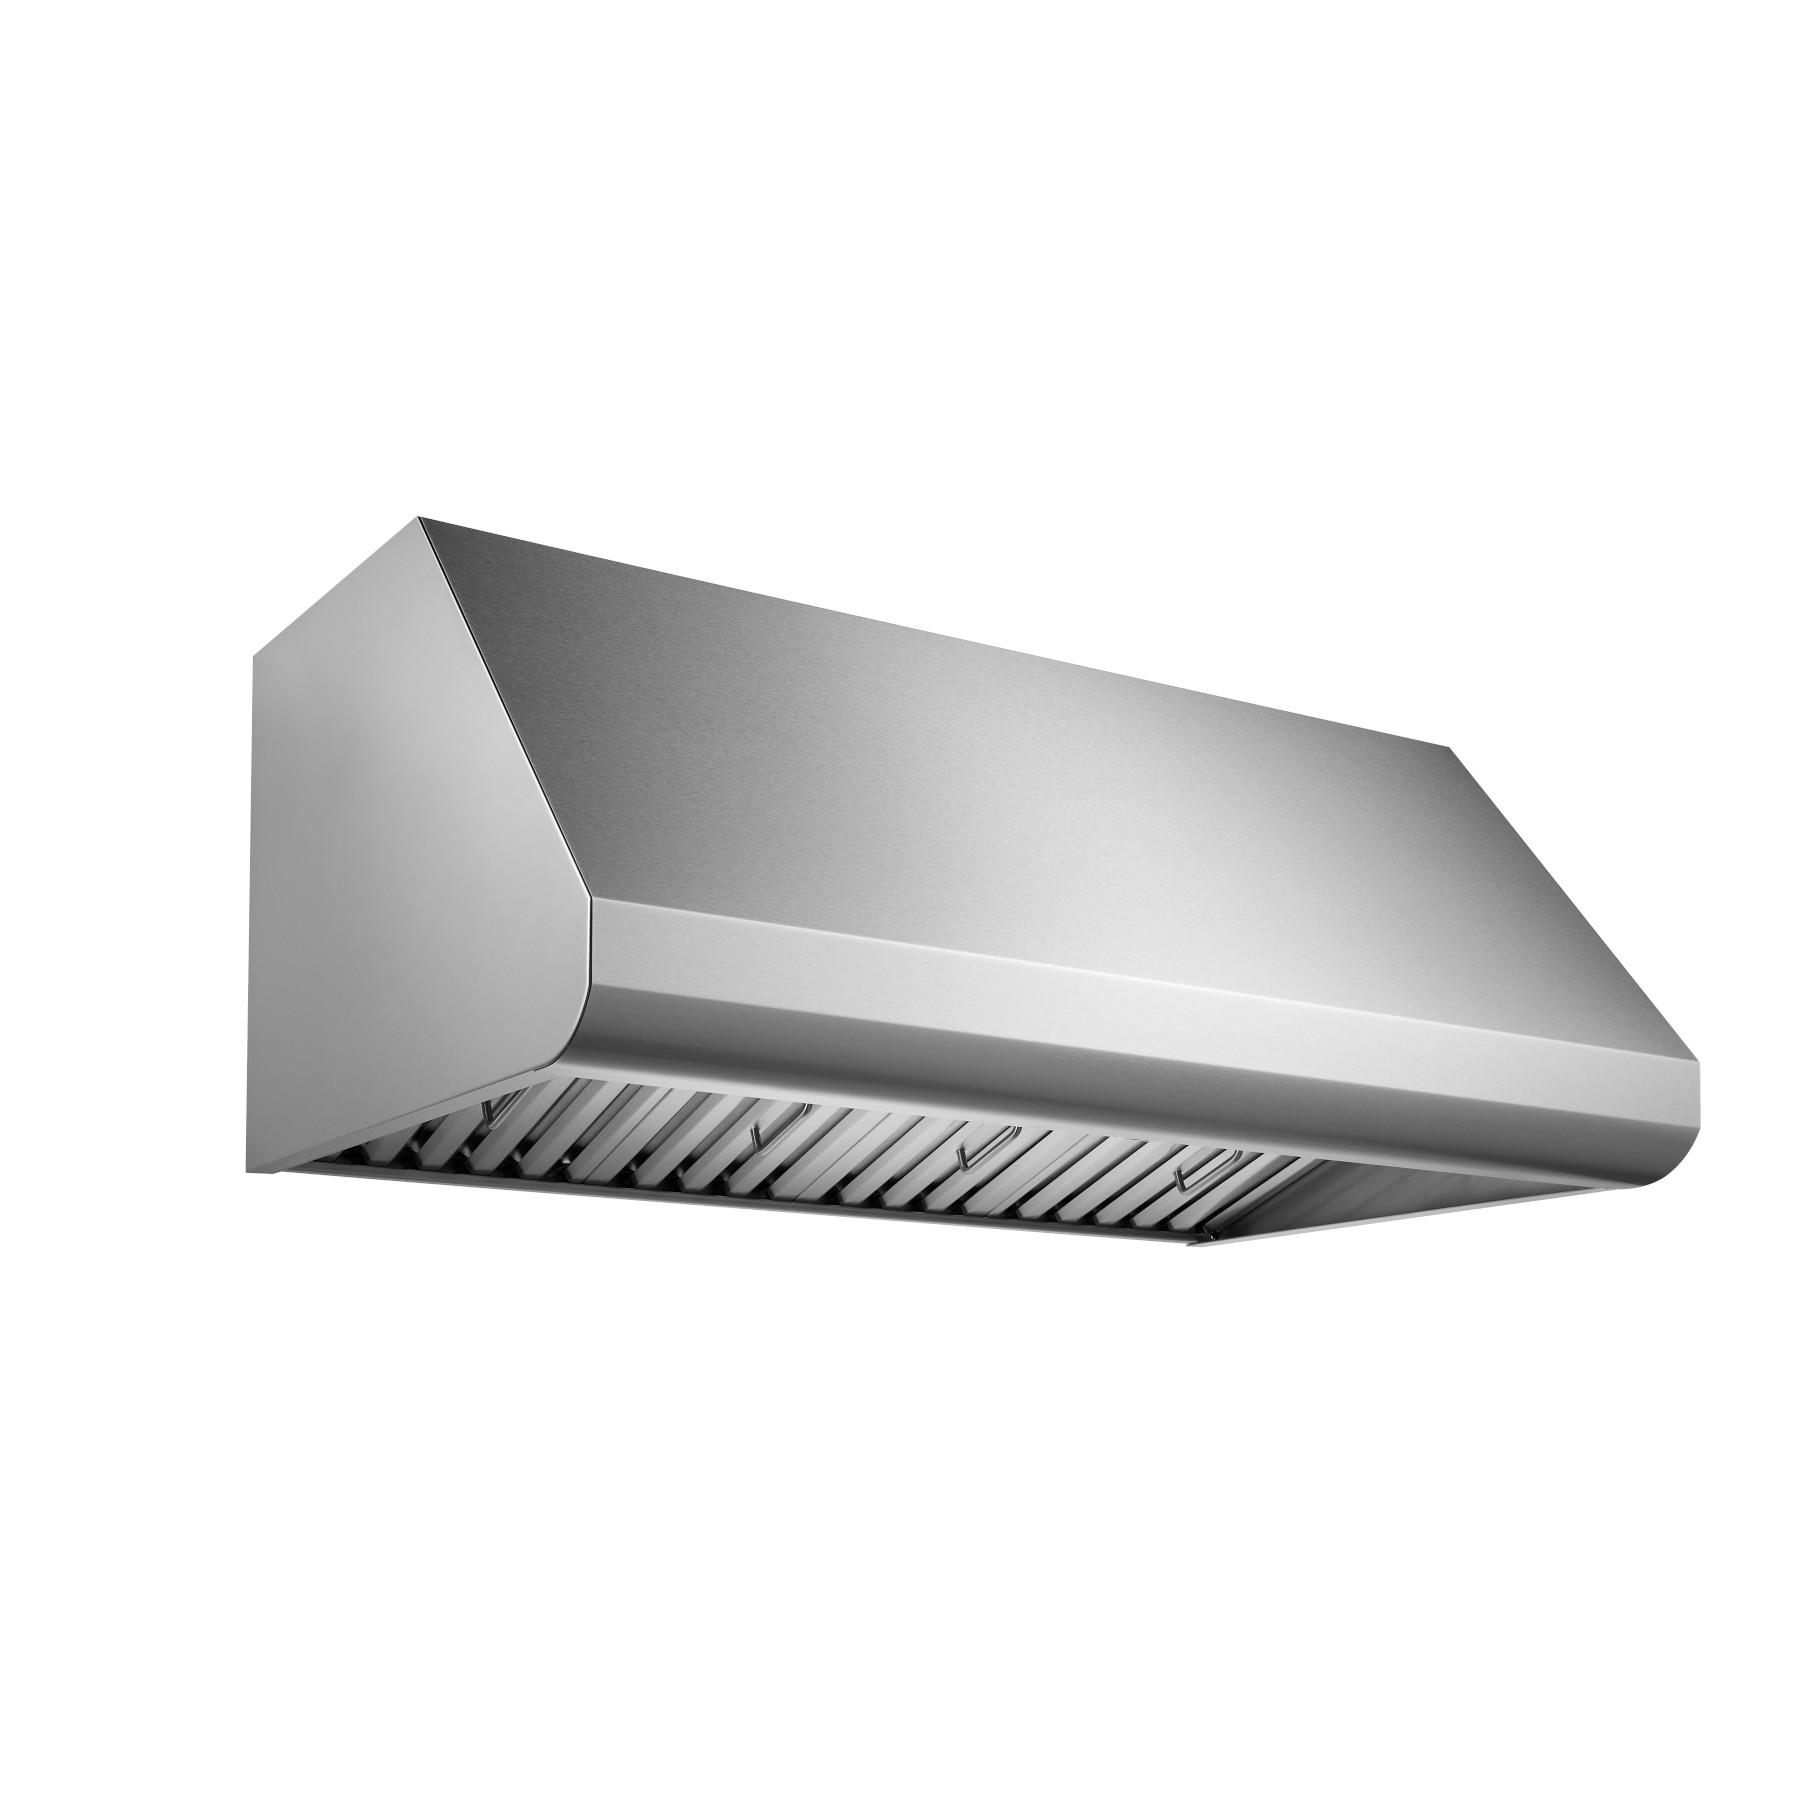 36-inch, Pro-Style Outdoor Range Hood, 1300 Max Blower CFM, Stainless Steel (WPD38I Series)